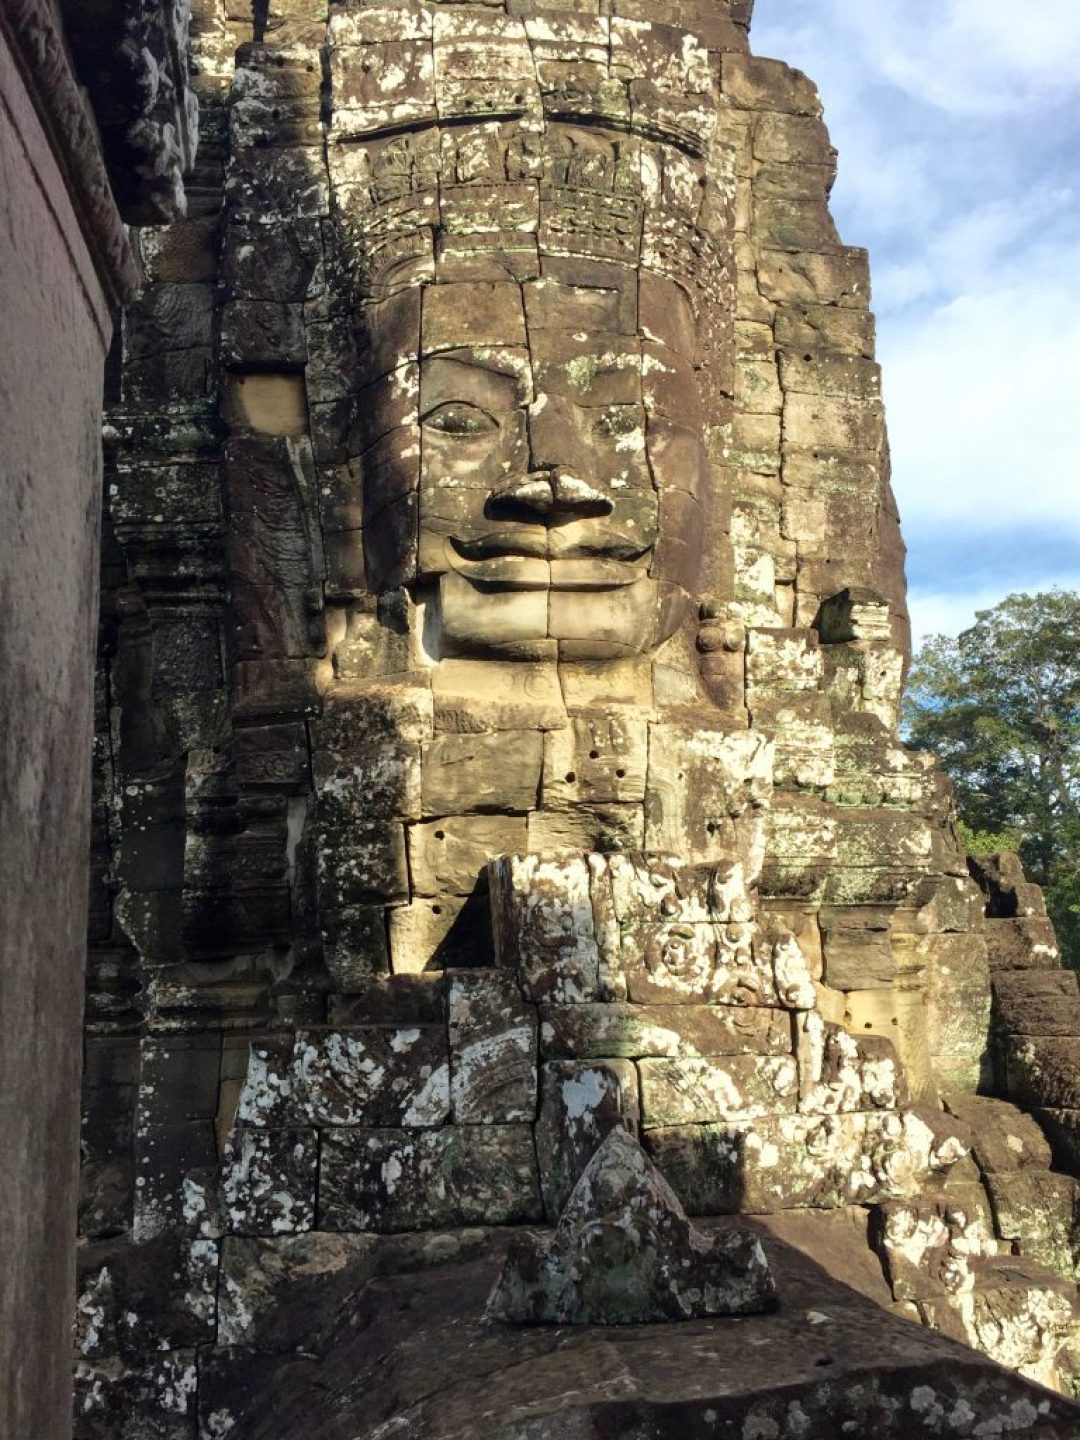 Buddha faces - many of these.